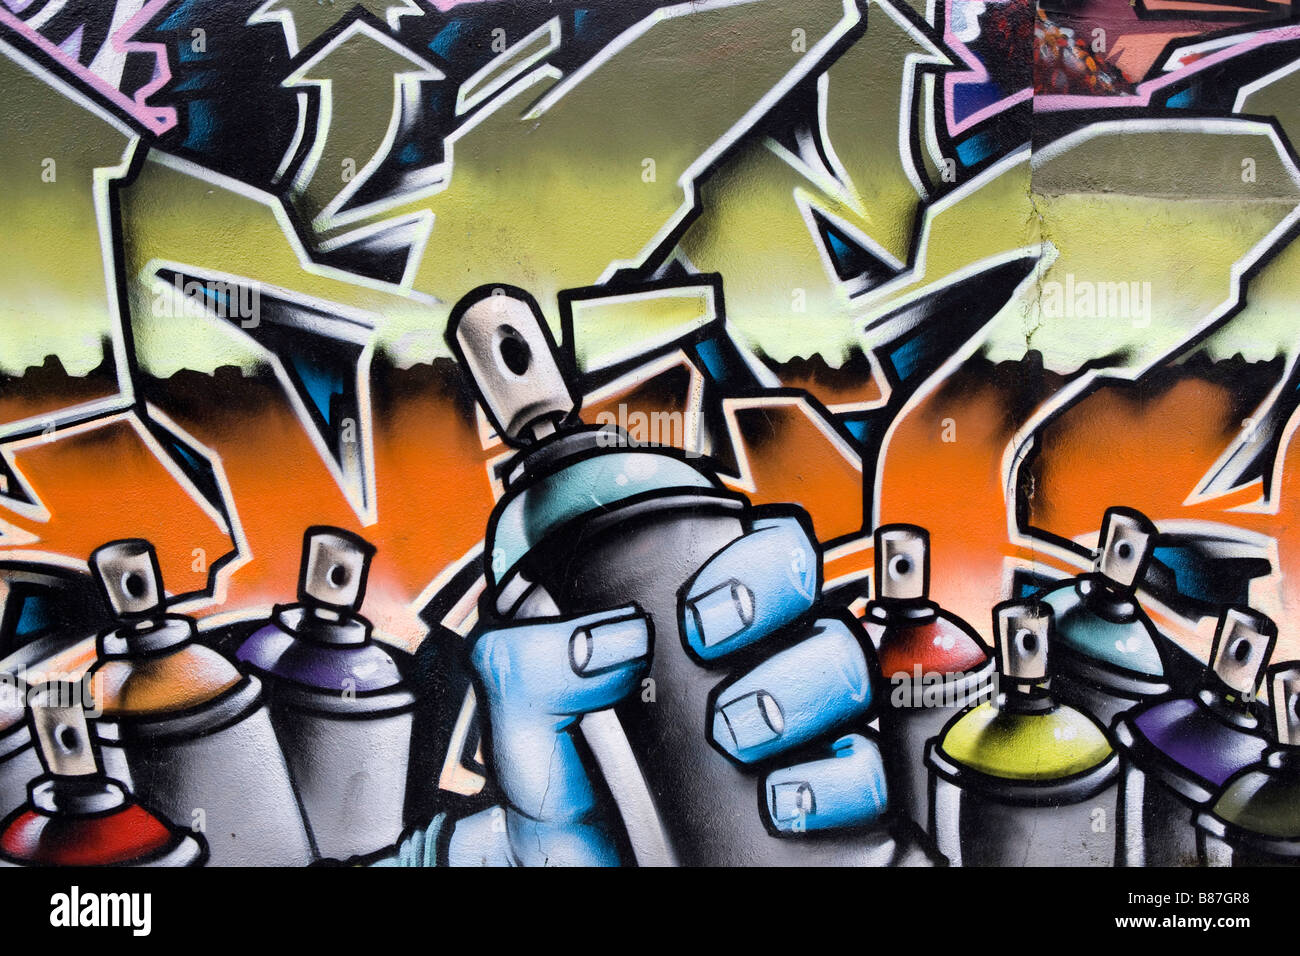 Grafitti Of Spray Cans On A Wall Stock Photo Alamy Follow the process from sketch to finished. https www alamy com stock photo grafitti of spray cans on a wall 22294476 html